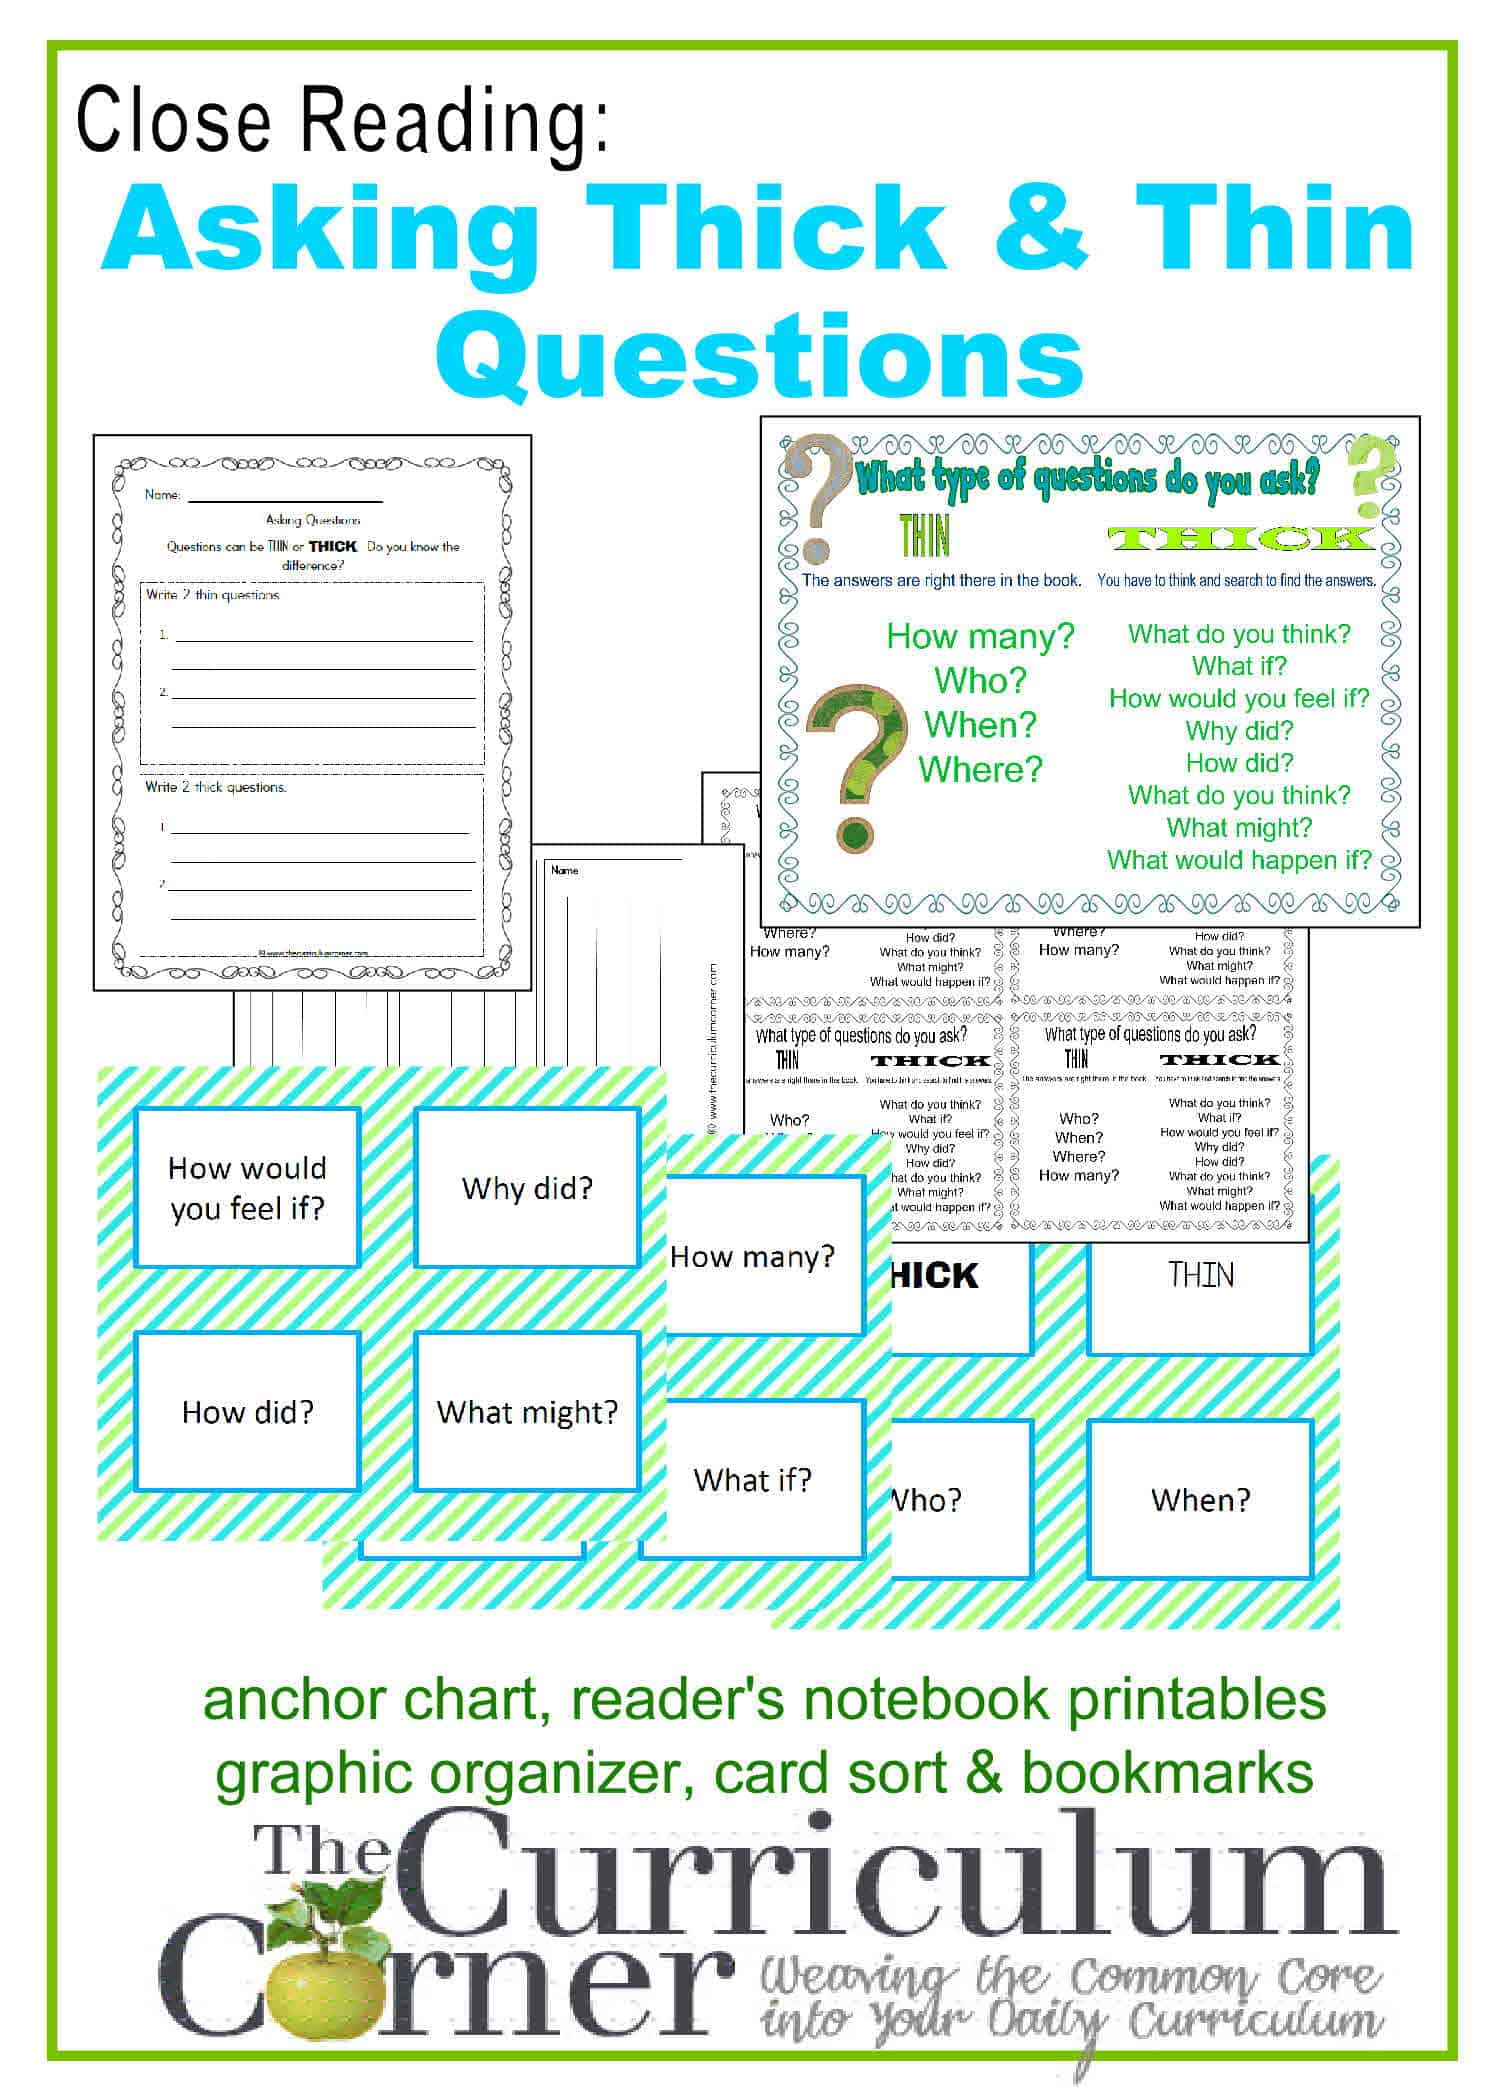 Close Reading:  Asking Thick & Thin Questions